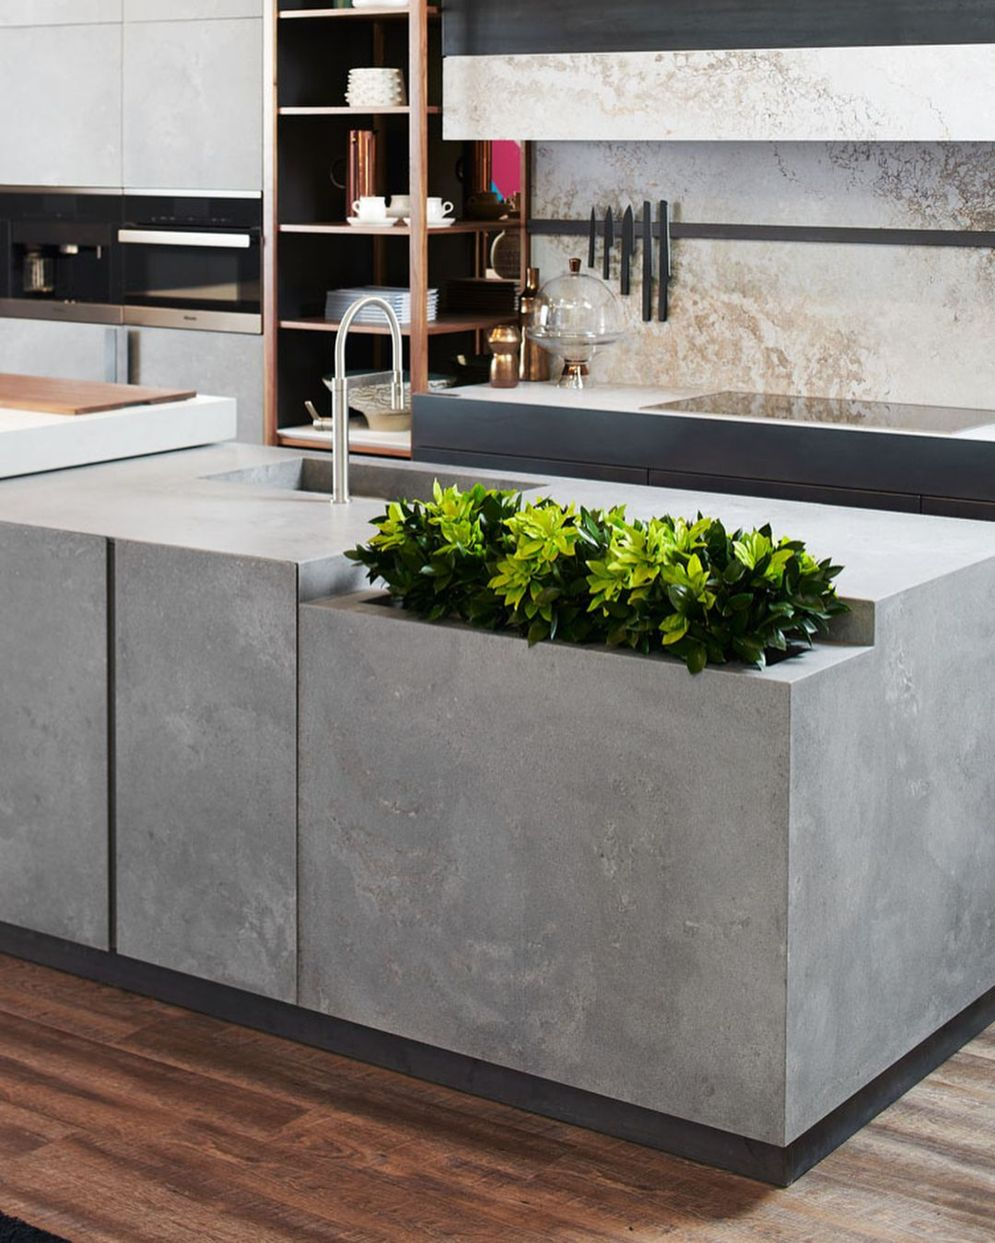 Modern kitchen updates using efficient concrete benchtops to show sturdier interior display Image 39